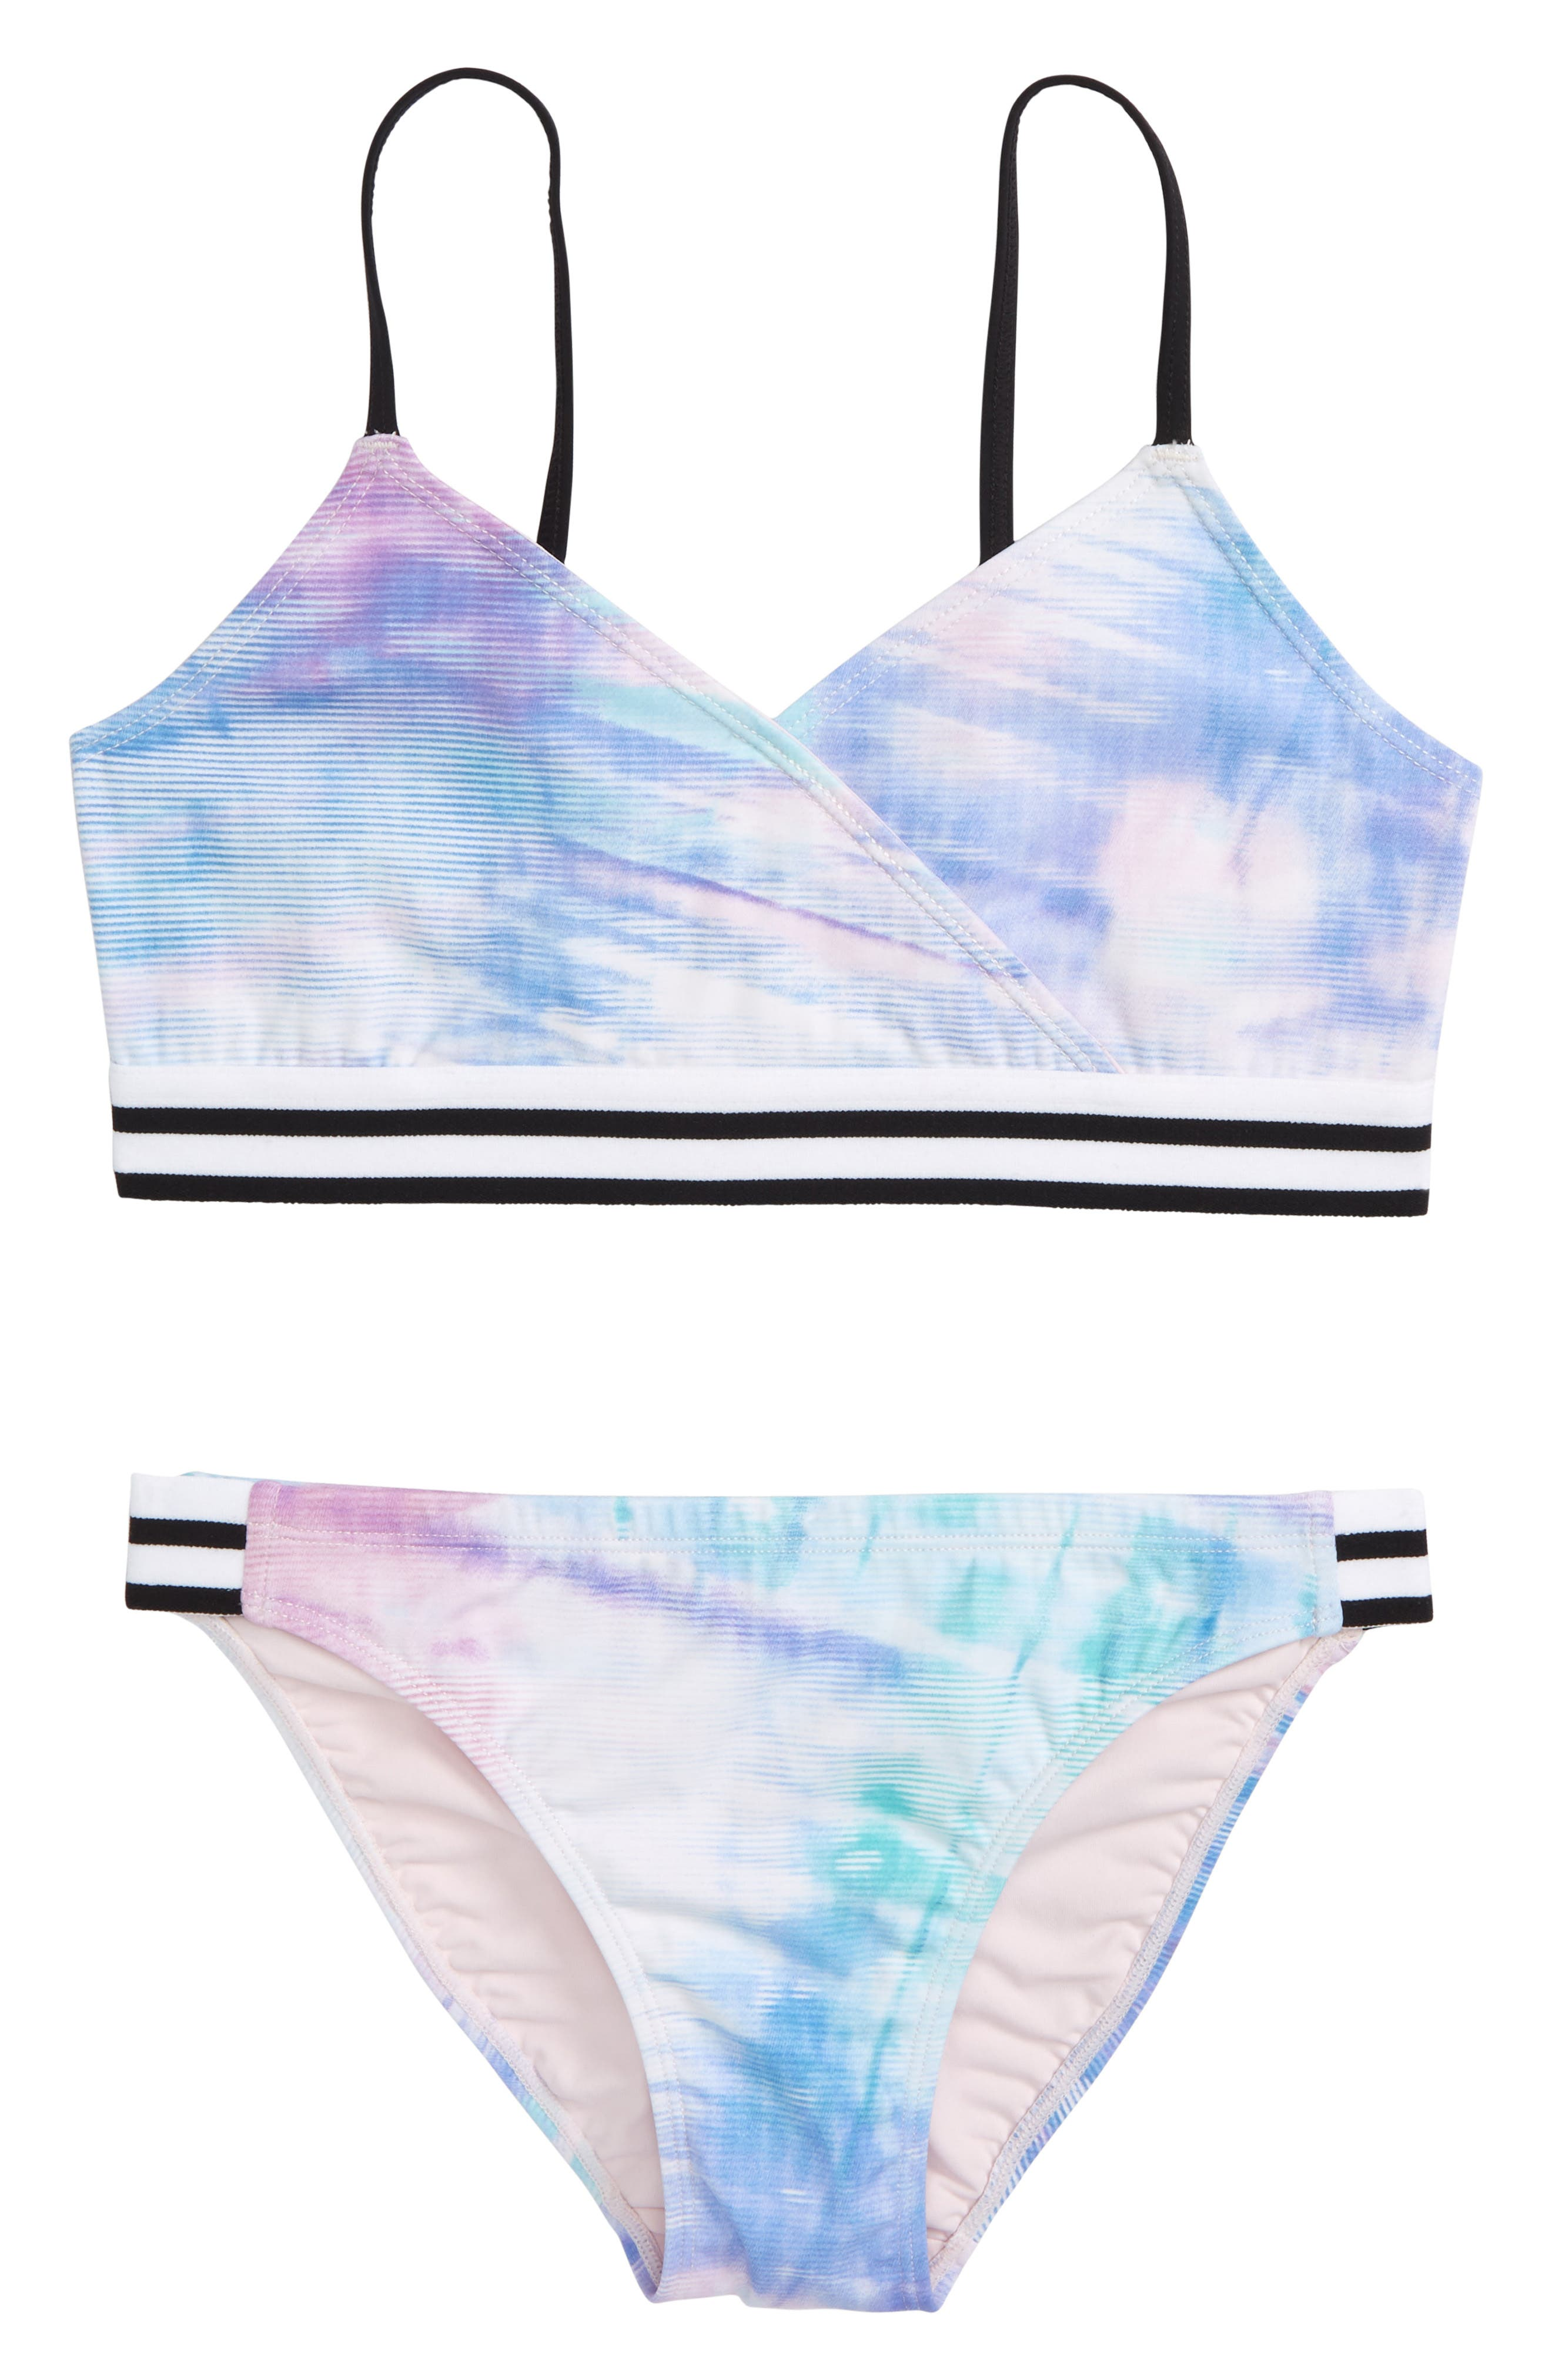 Retro Two-Piece Swimsuit,                             Main thumbnail 1, color,                             Pink Neon Striped Wash